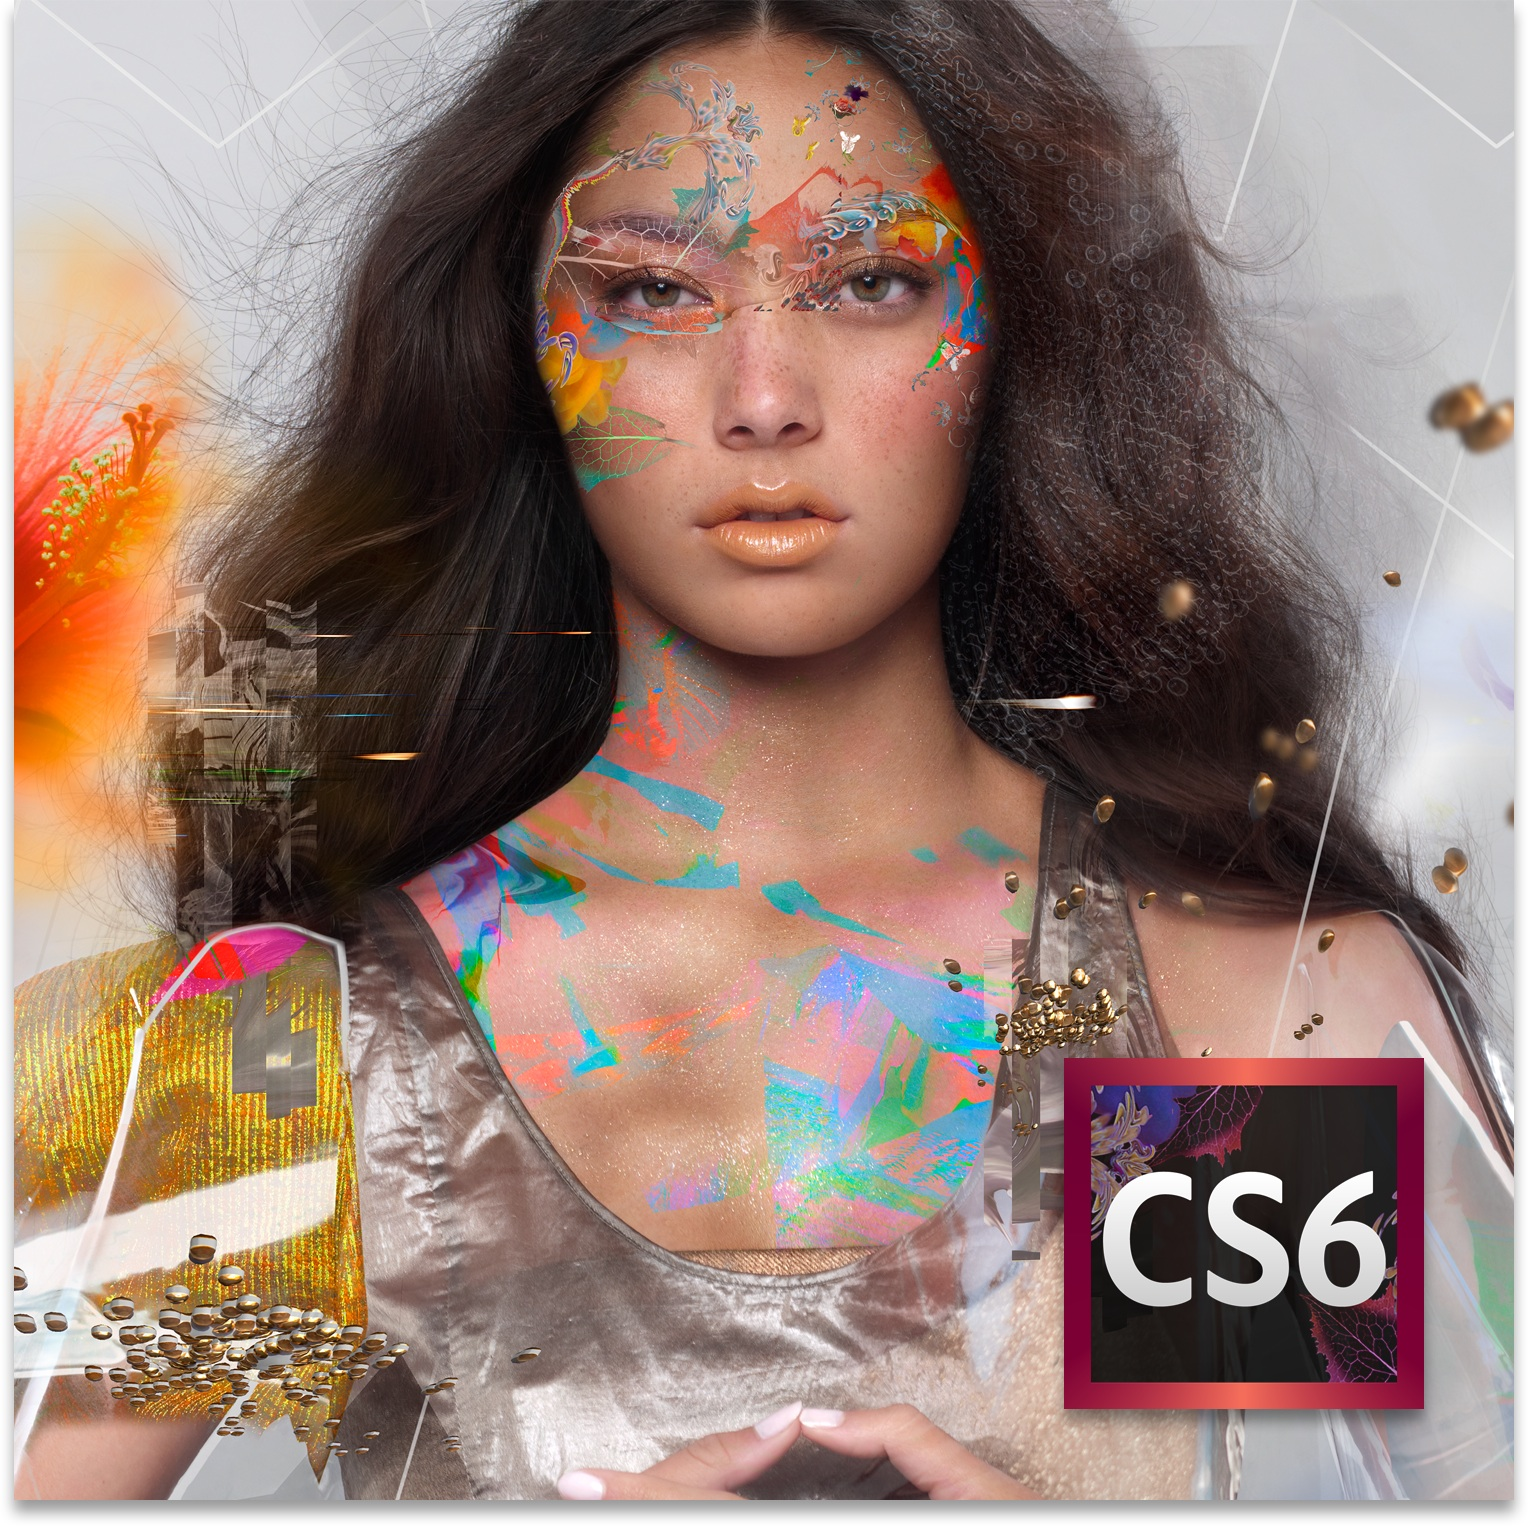 Adobe Creative Cloud and Creative Suite 6